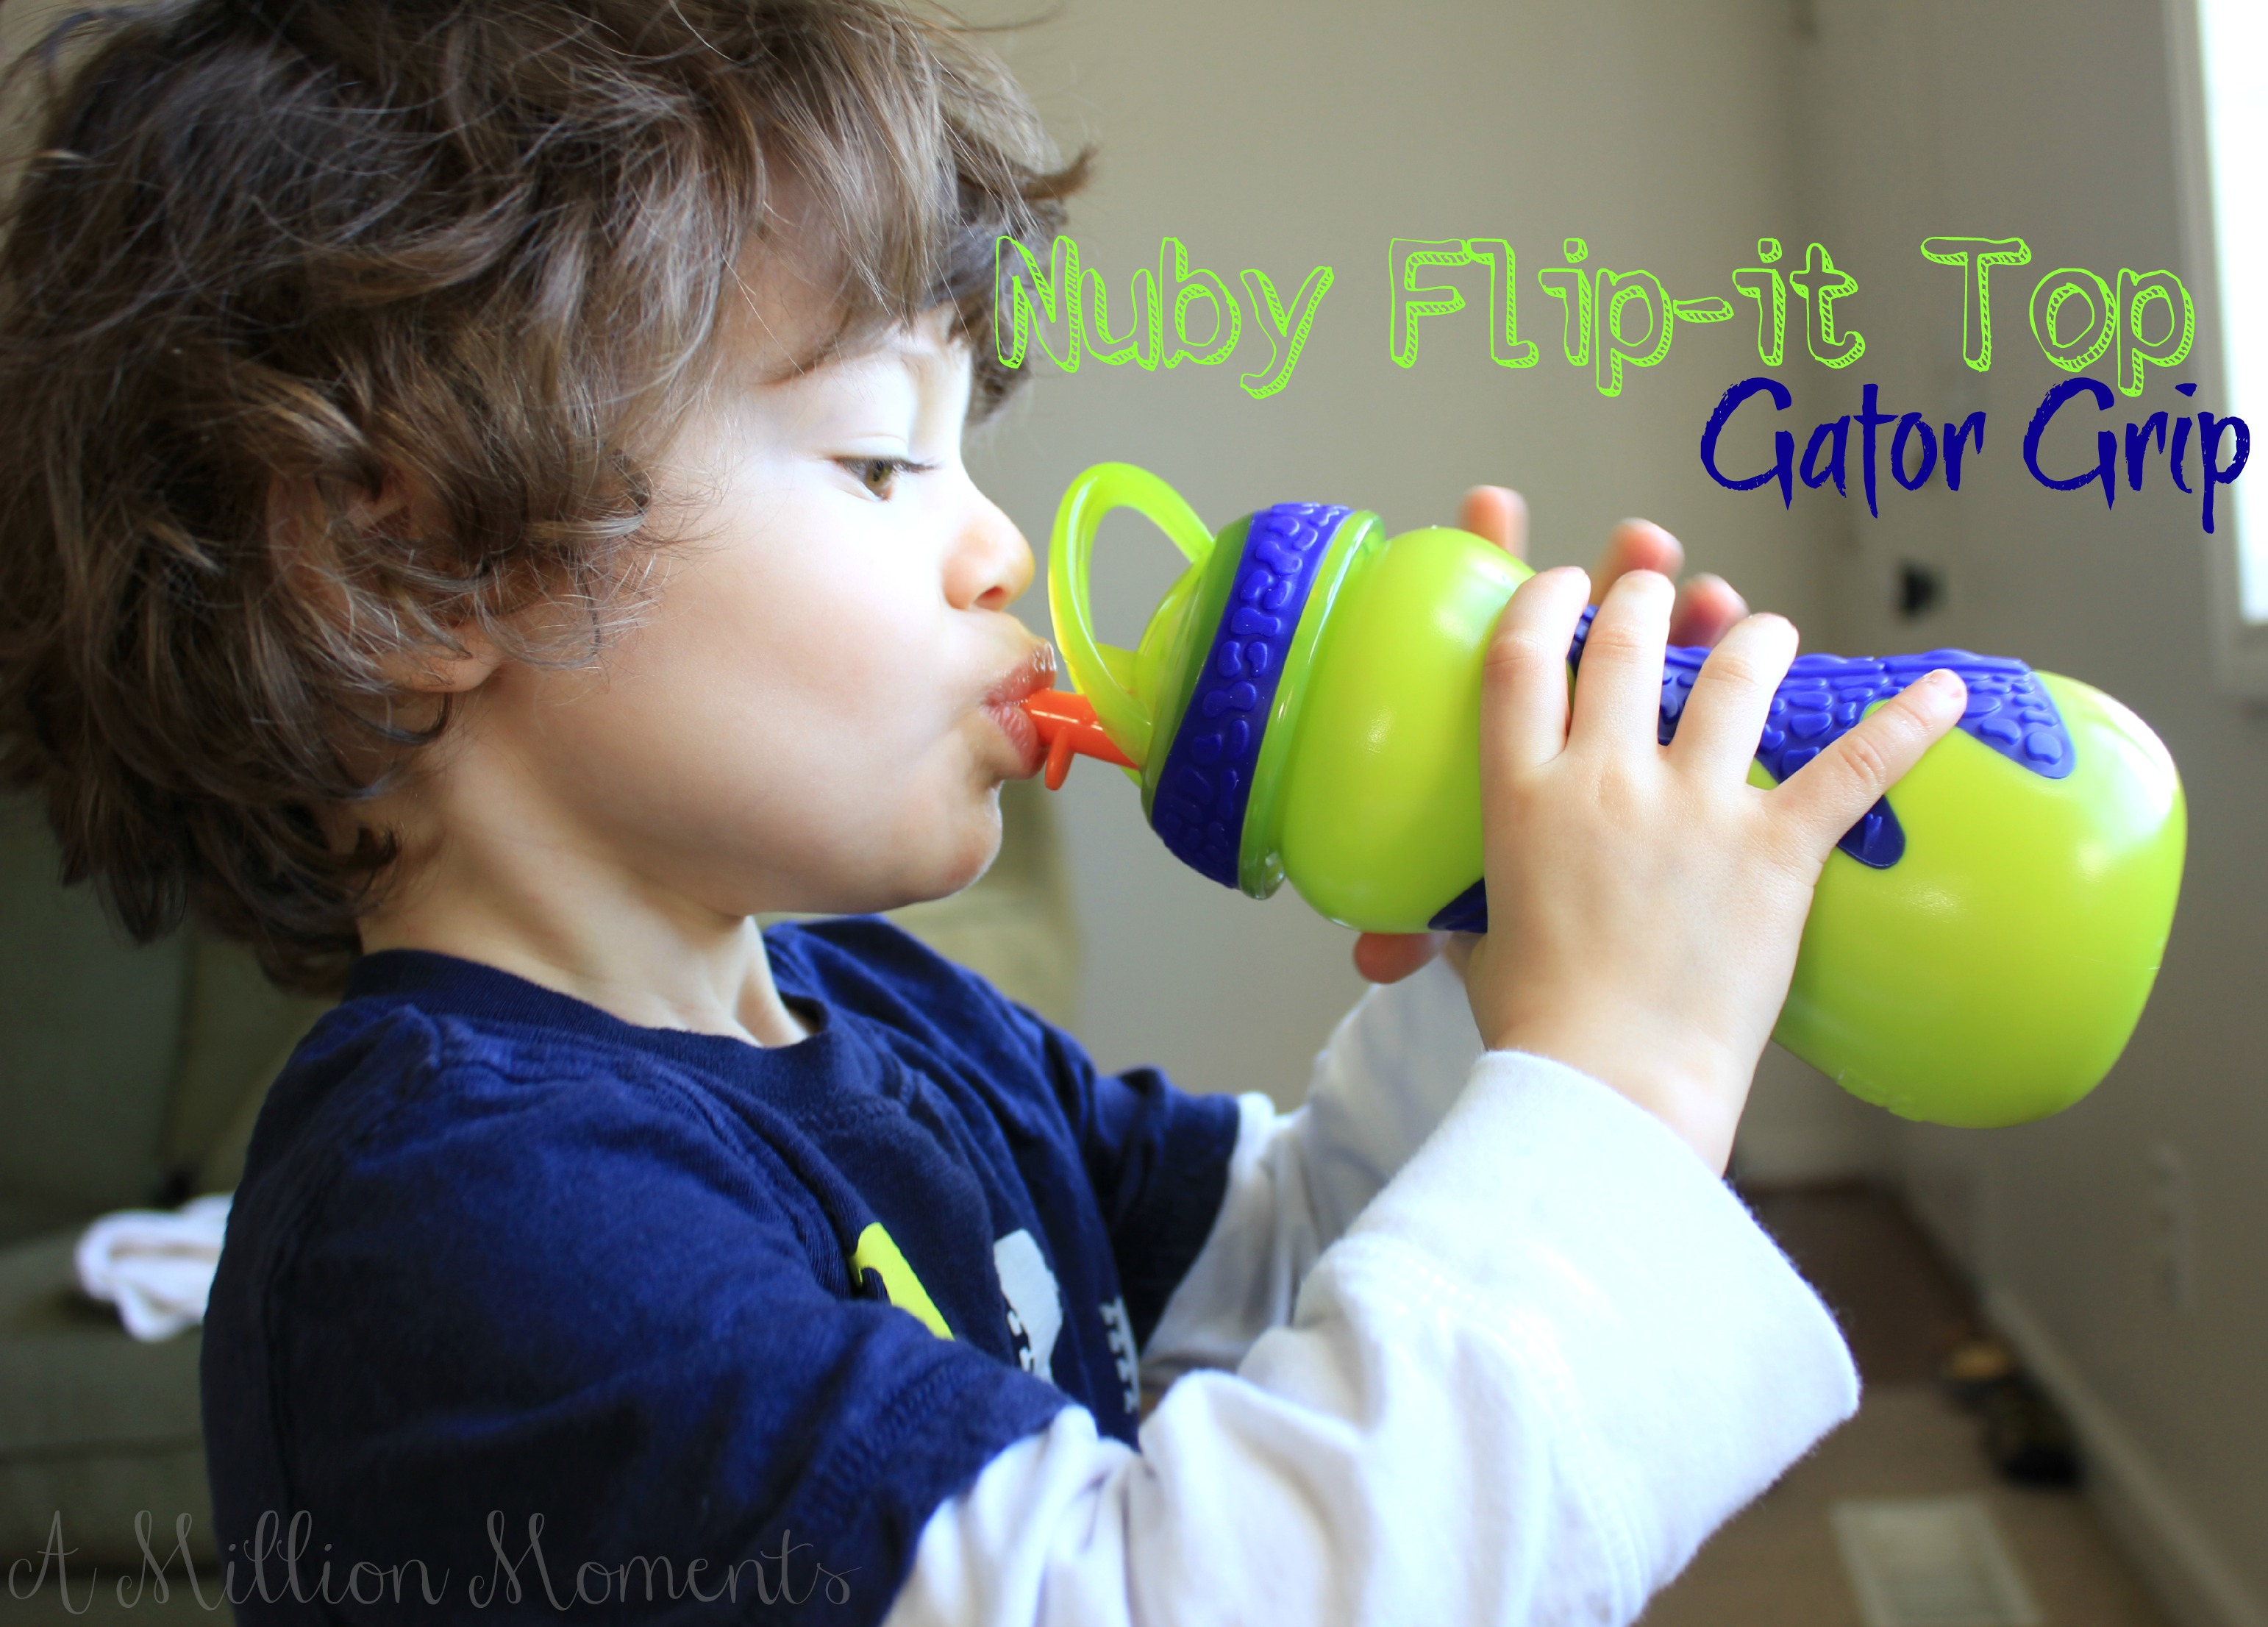 Nuby Flip-it Top Gator Grip